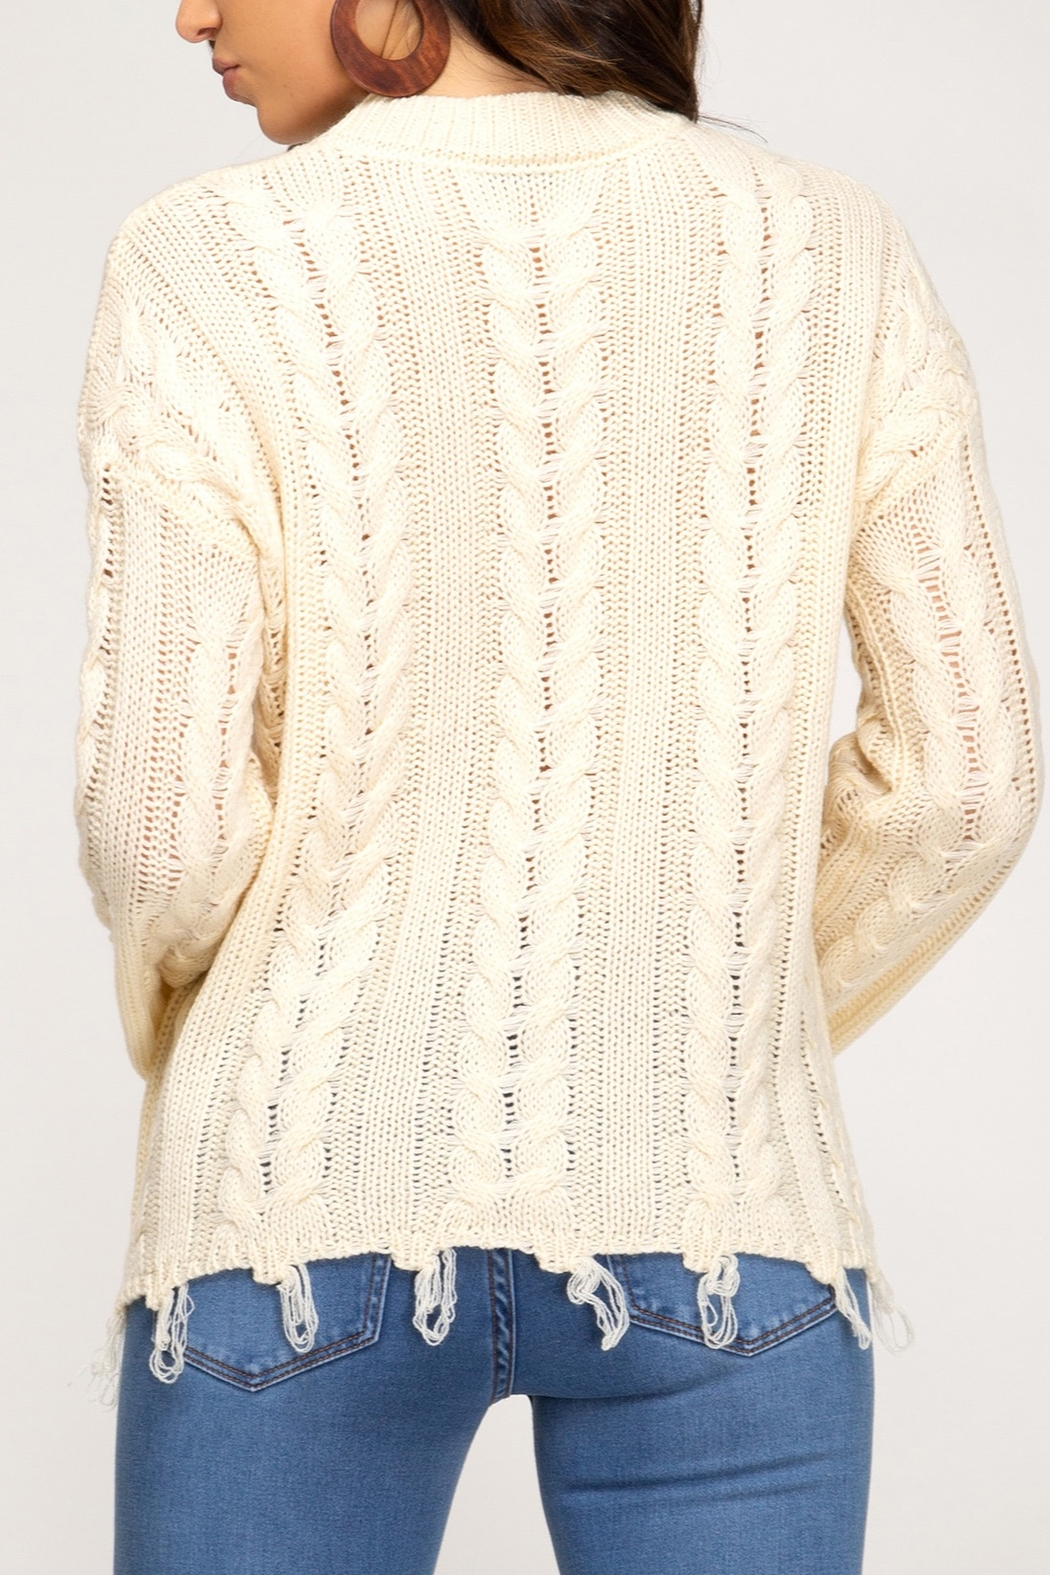 She + Sky Casual Encounters Sweater - Front Full Image